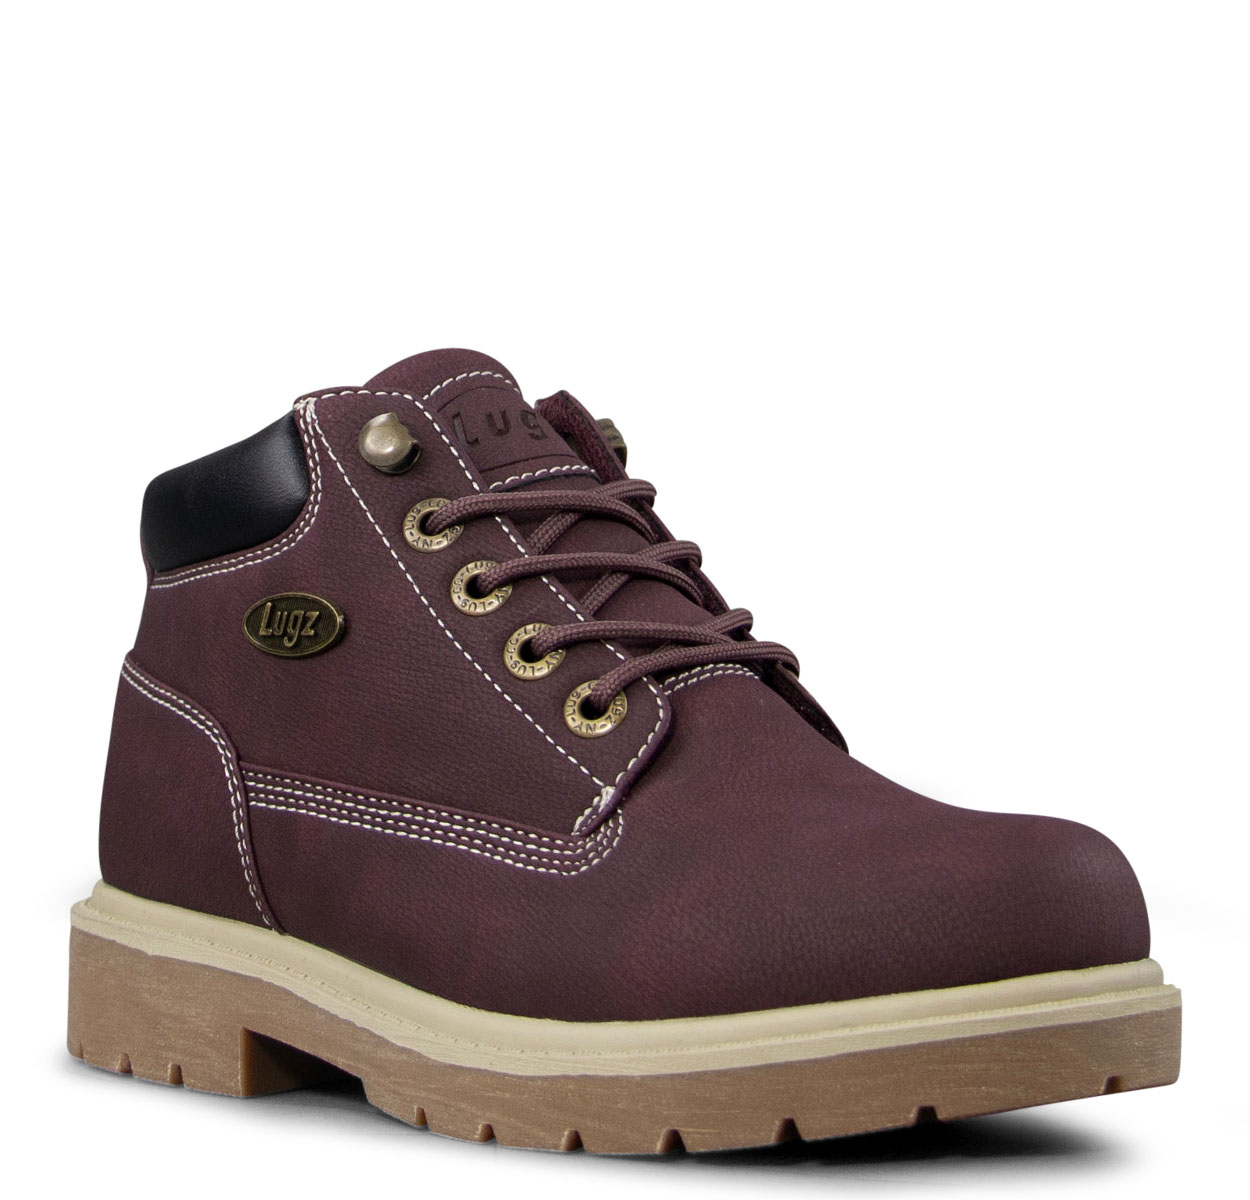 Women's Drifter Lx Chukka Boot (Choose Your Color: MAROON/BLACK/CREAM, Choose Your Size: 5.5)